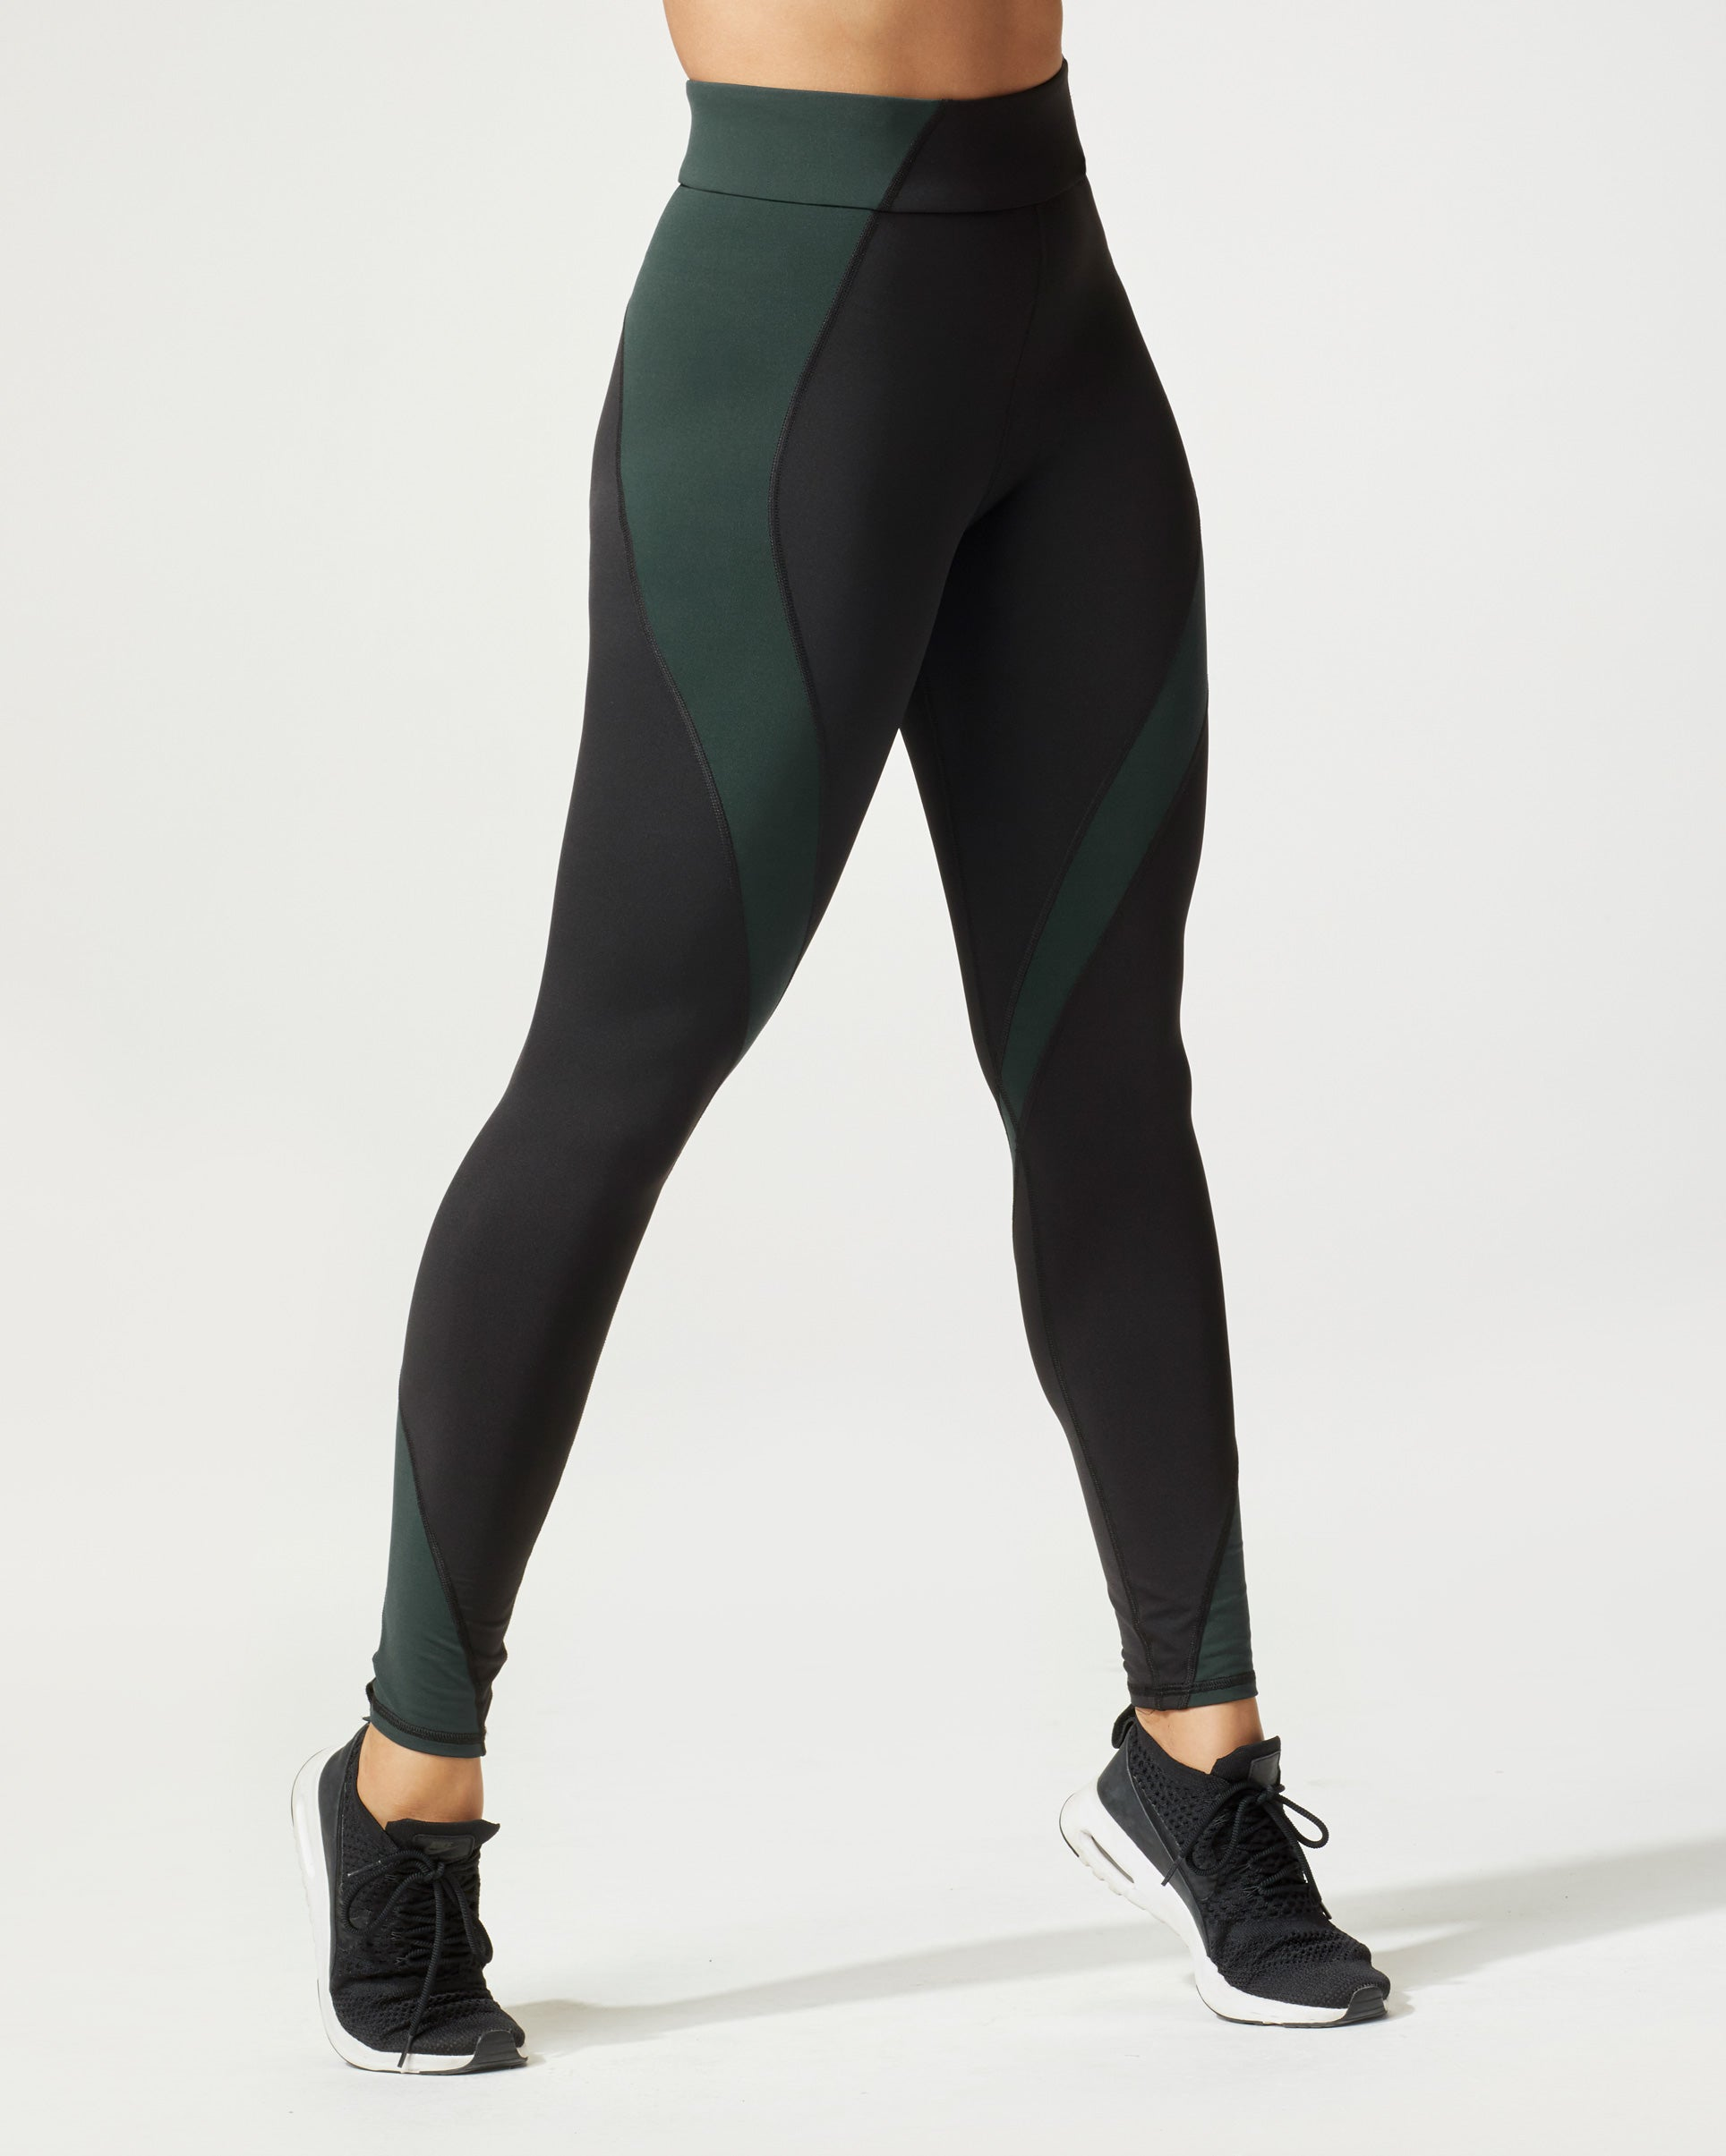 stellar-legging-black-forest